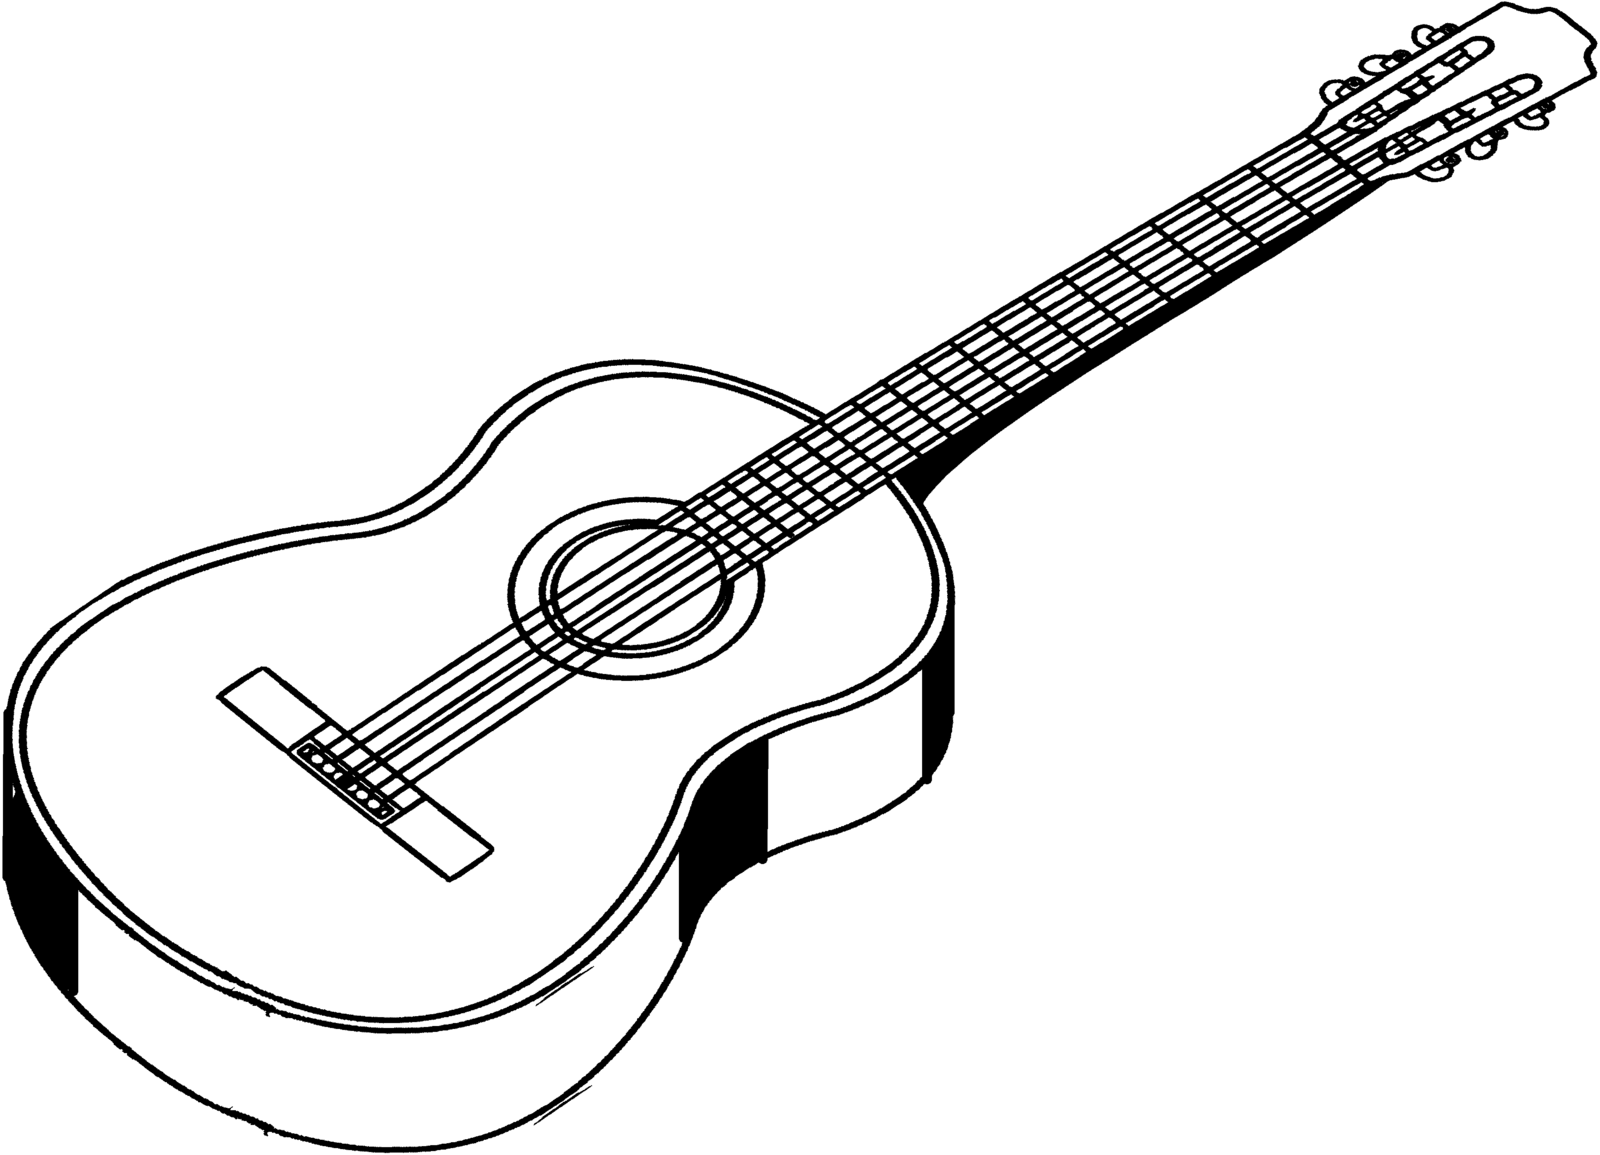 Electric Guitar Line Drawing At Getdrawings